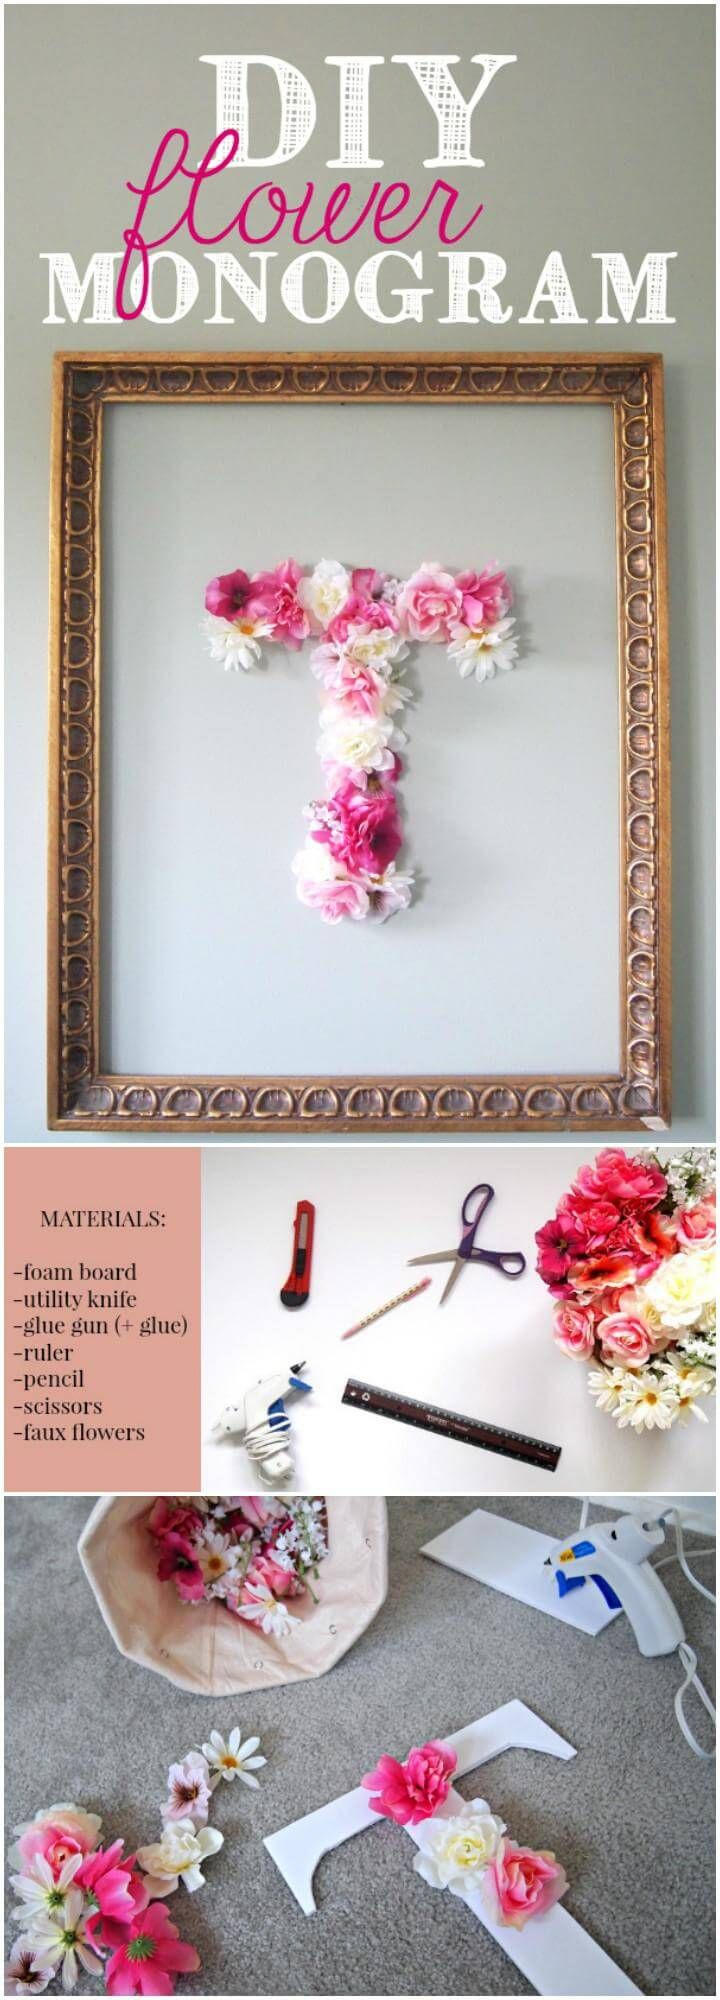 200 Best Diy Craft Ideas And Projects For Teen Girls Rachel S 13th